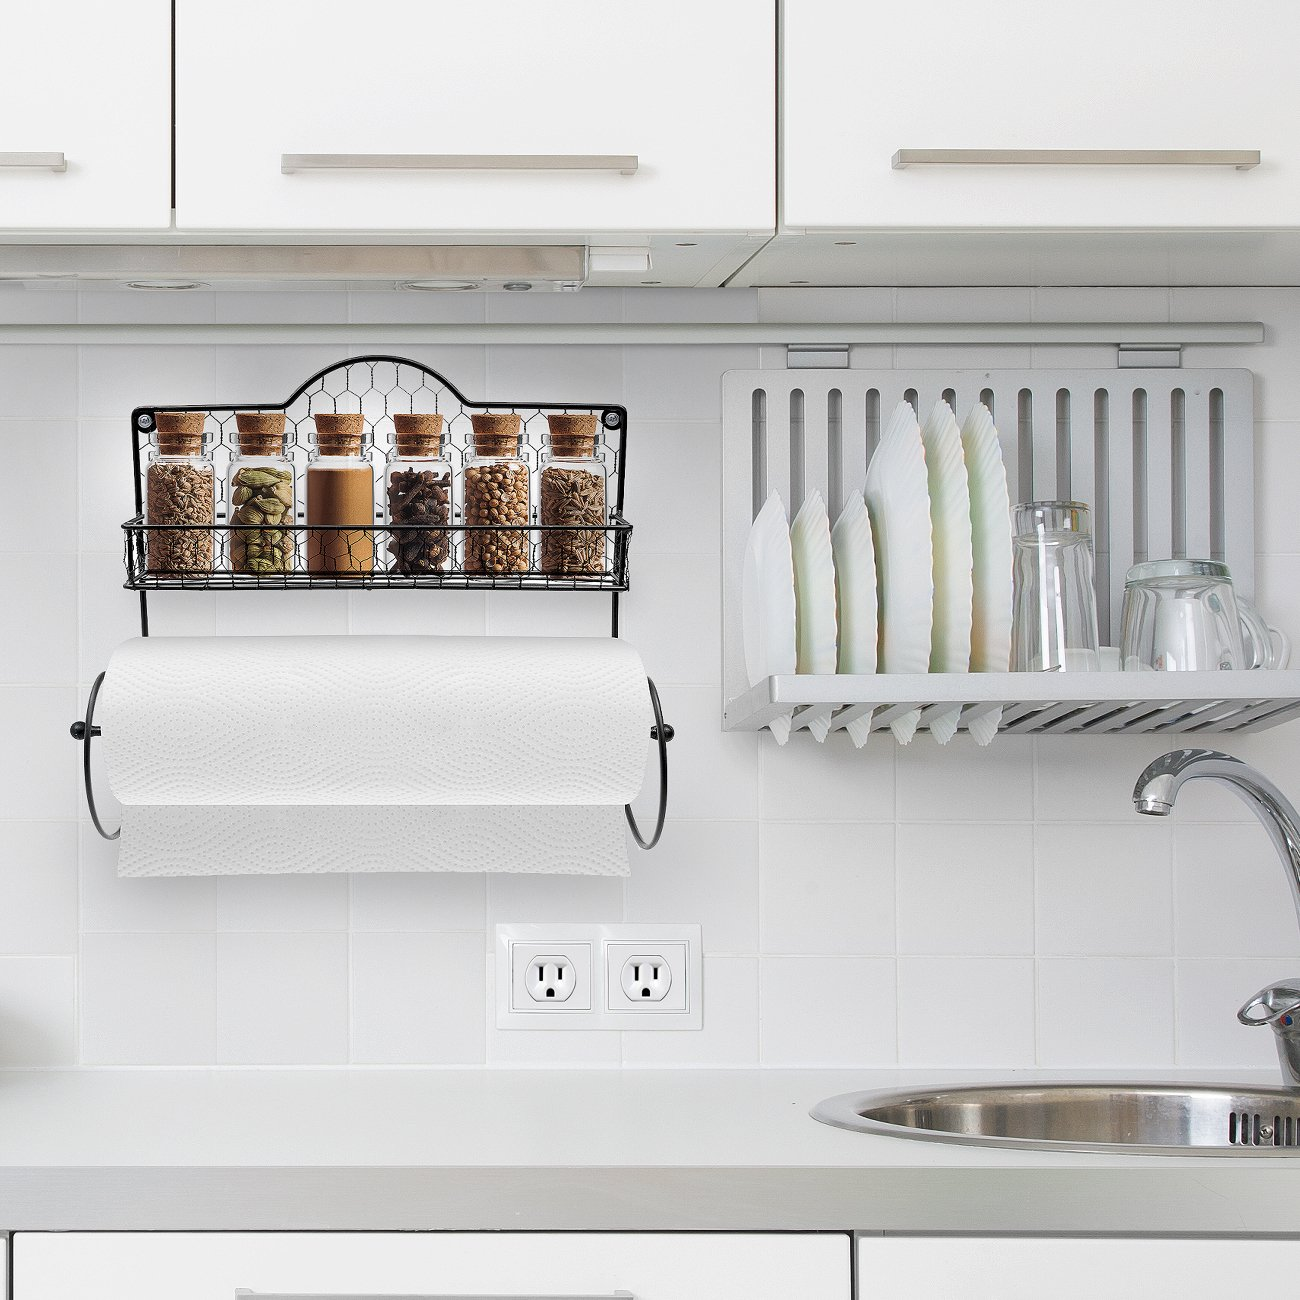 Sorbus Paper Towel Holder, Spice Rack and Multi-Purpose Shelf—Wall Mounted Storage for Kitchen Accessories, Towels, Toiletries, Supplies, etc.—Ideal for Kitchen/Bathroom—Made of Steel (Black) by Sorbus (Image #6)